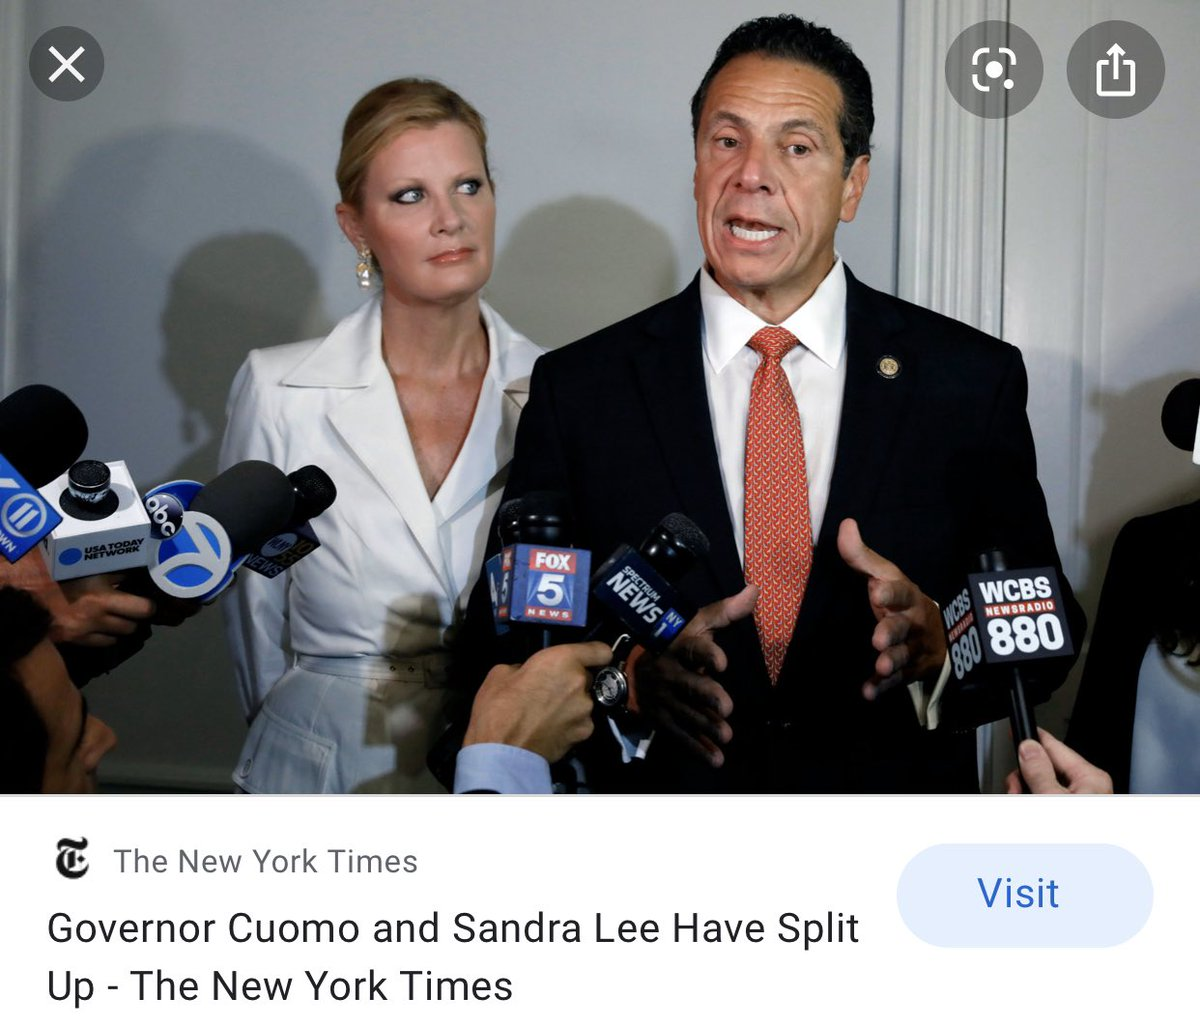 Quigs On Twitter I Just Learned That Andrew Cuomo S Ex Girlfriend Of 14 Years Was The 2 Shots Of Vodka Lady And I Don T Know What To Do With This Information Https T Co Enuyu5cncj